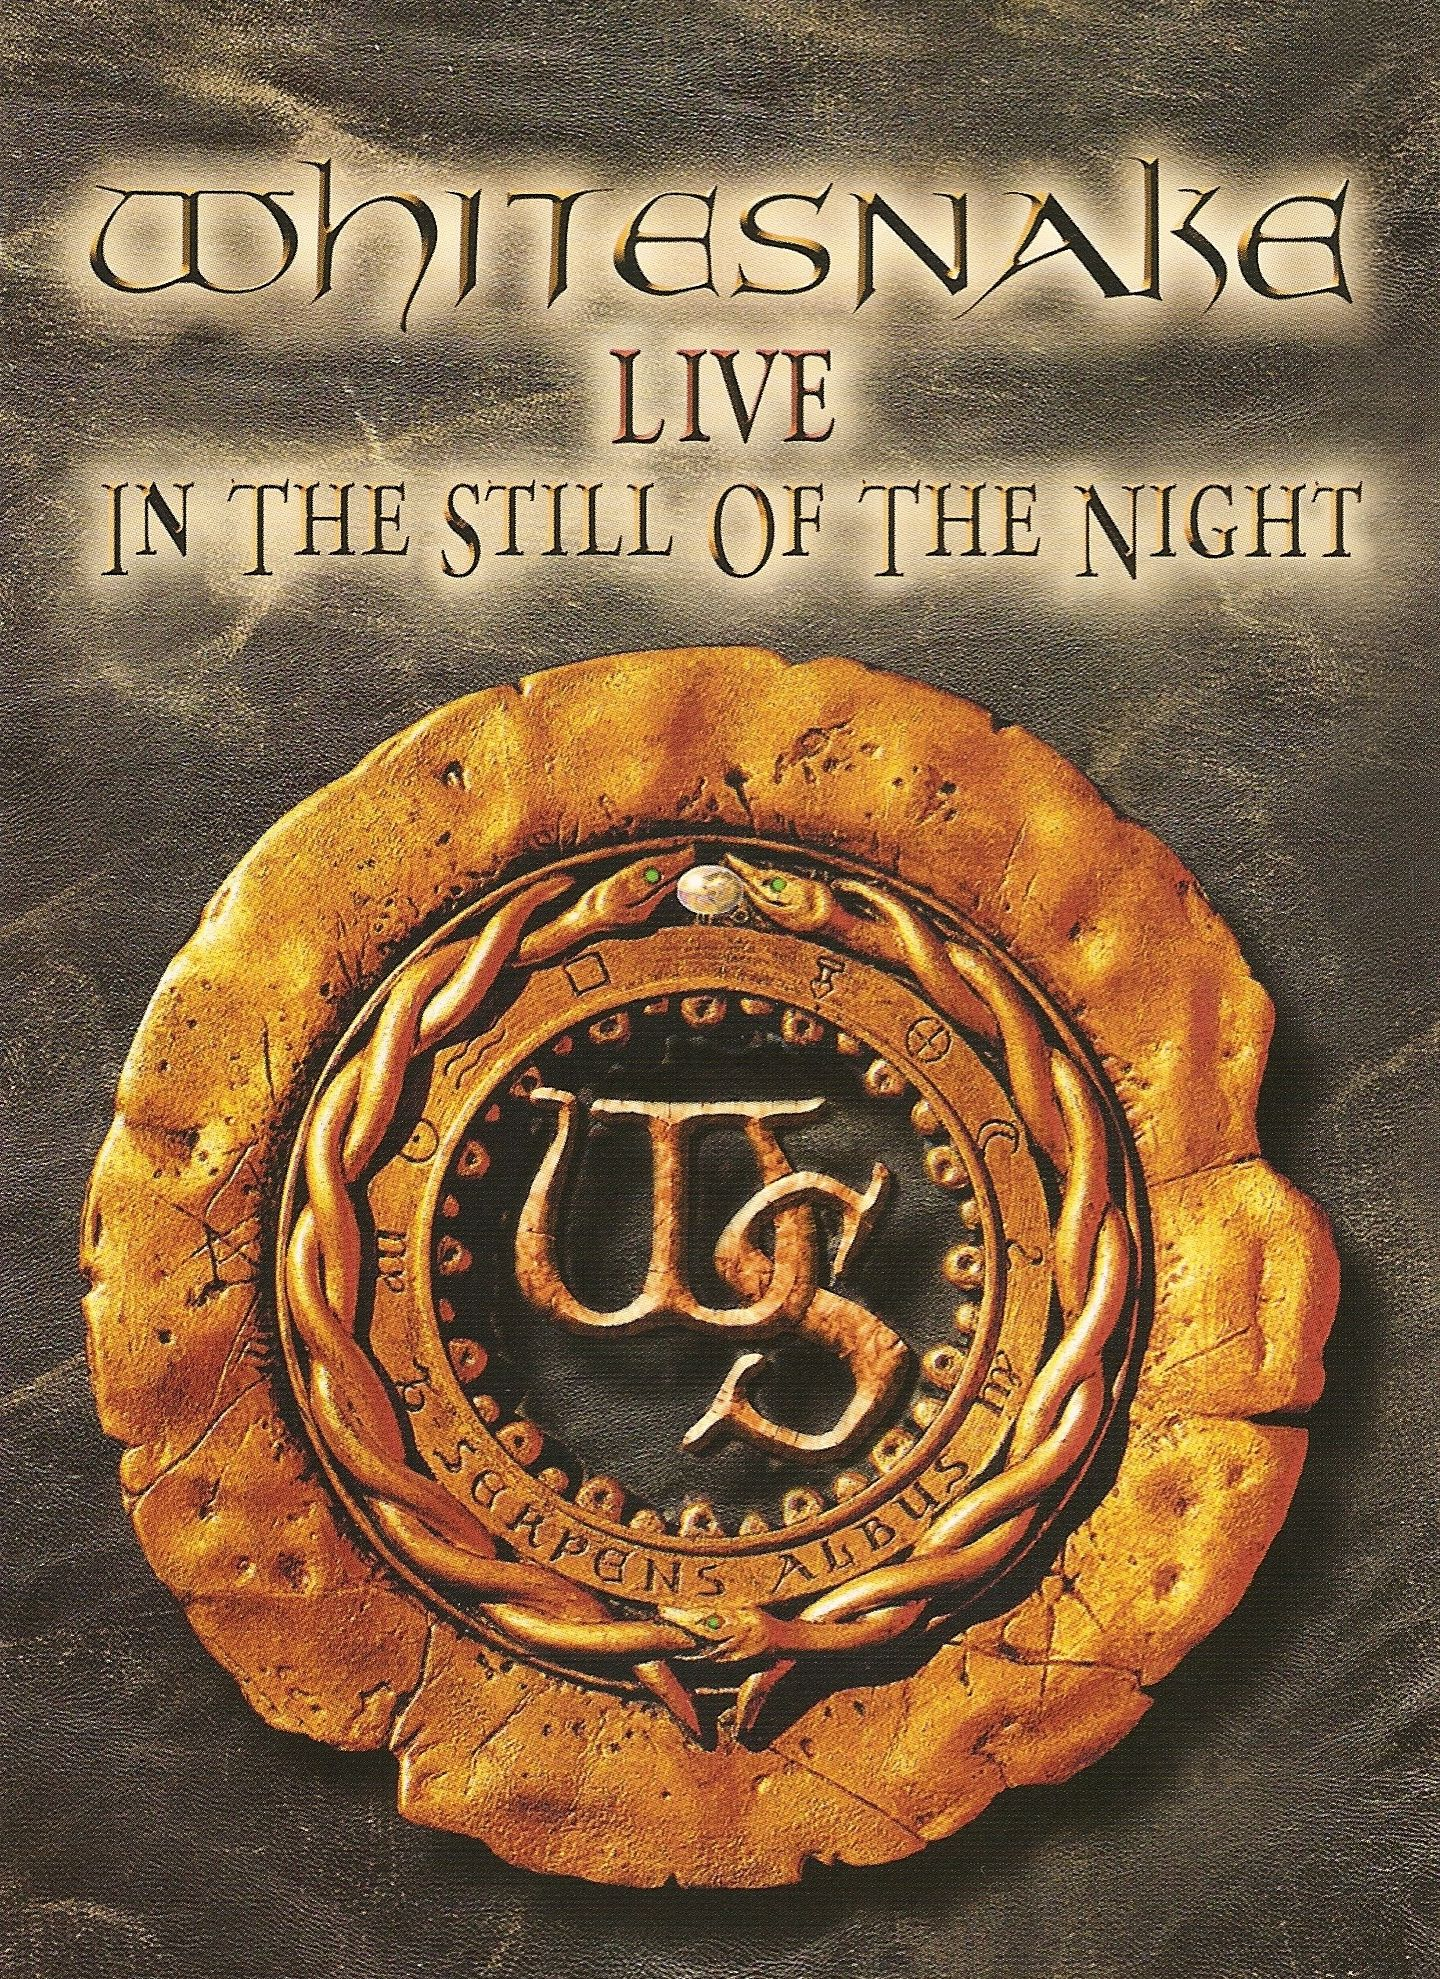 Whitesnake - Live..in the Still of the Night (2005) DVD